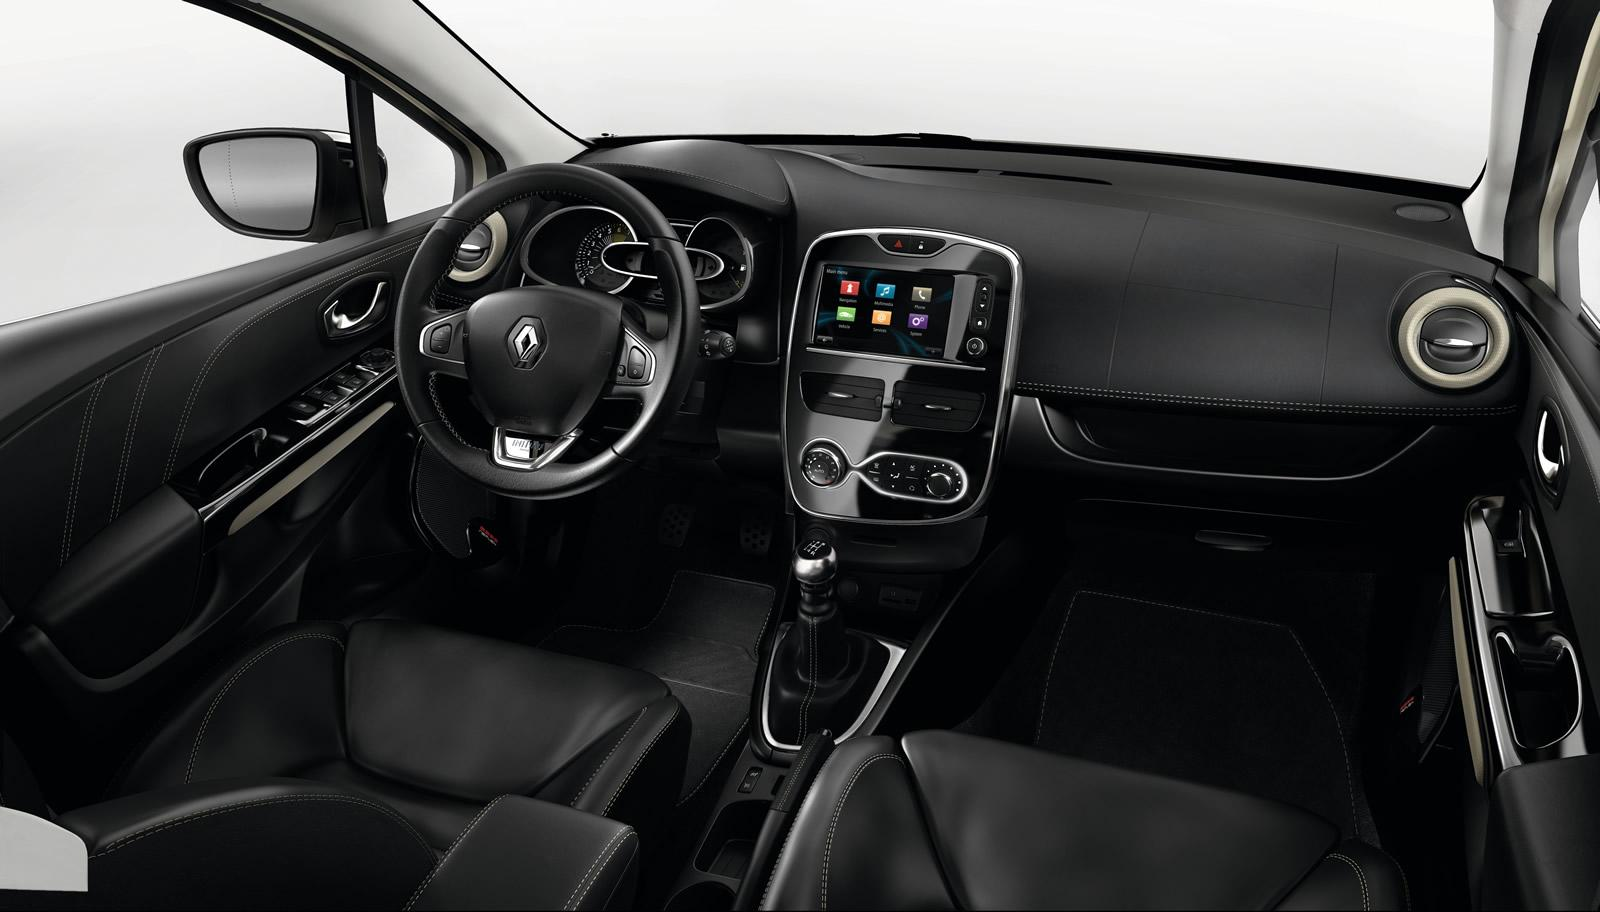 2015 renault clio initiale paris introduced autonews 1 for Interieur clio 4